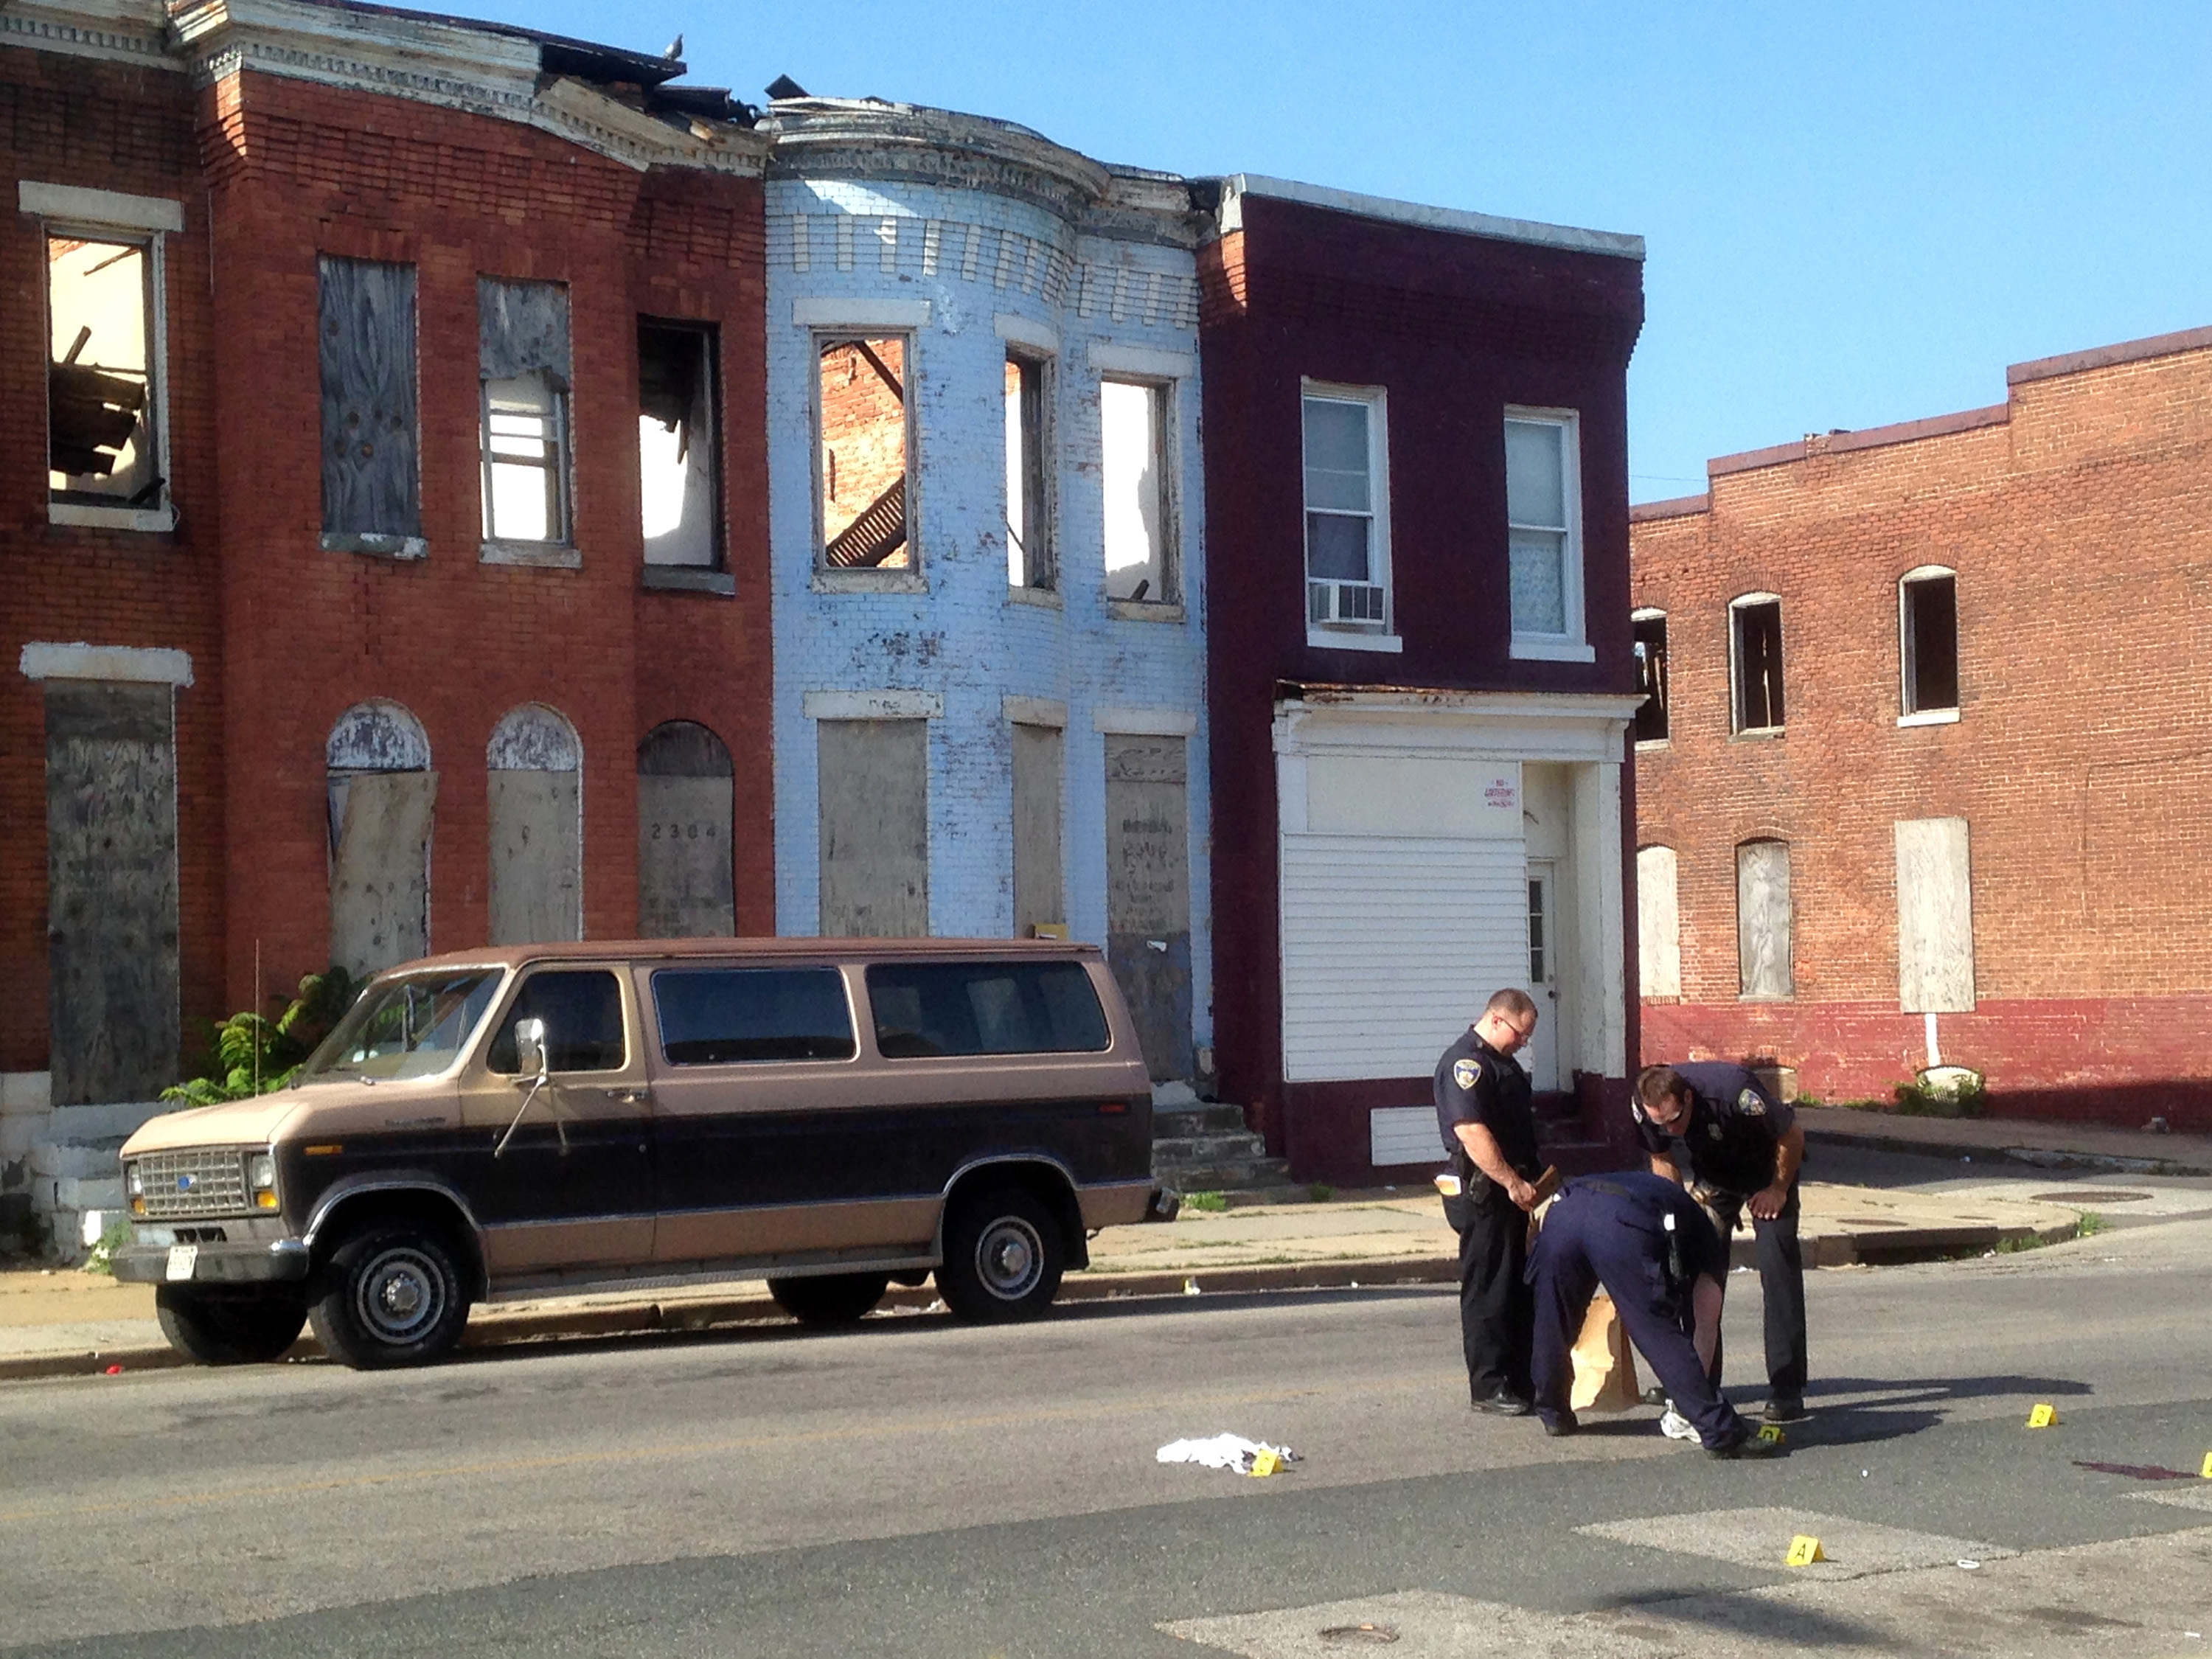 Police pick up a pair of tennis shoes after a double shooting in the 2300 block of E. Preston Street in Broadway East on May 24, 2015 in Baltimore, Md.